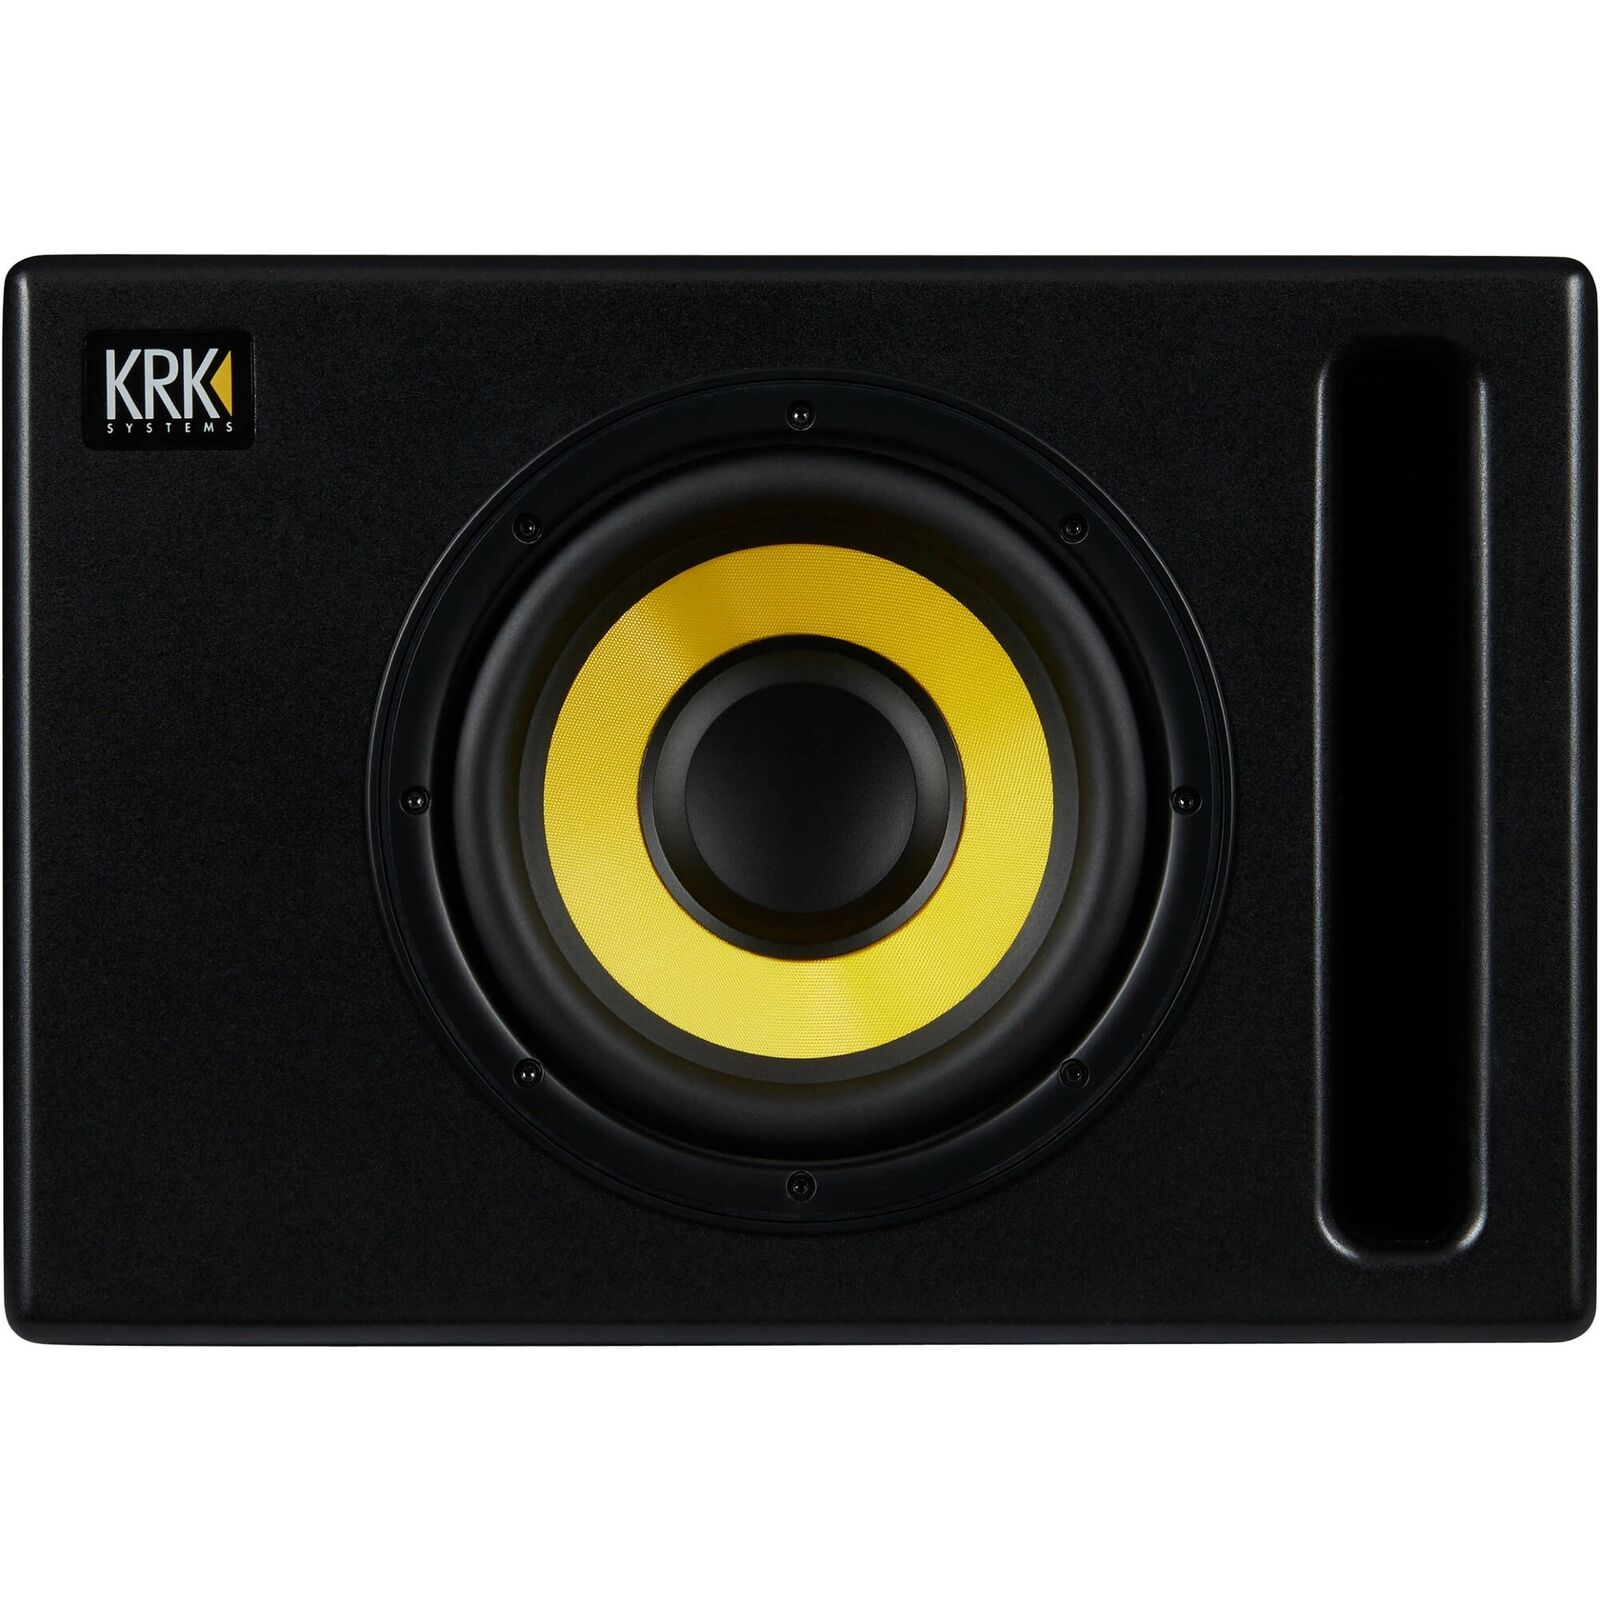 "KRK S8.4 8"" Active Studio Subwoofer. Buy it now for 349.00"